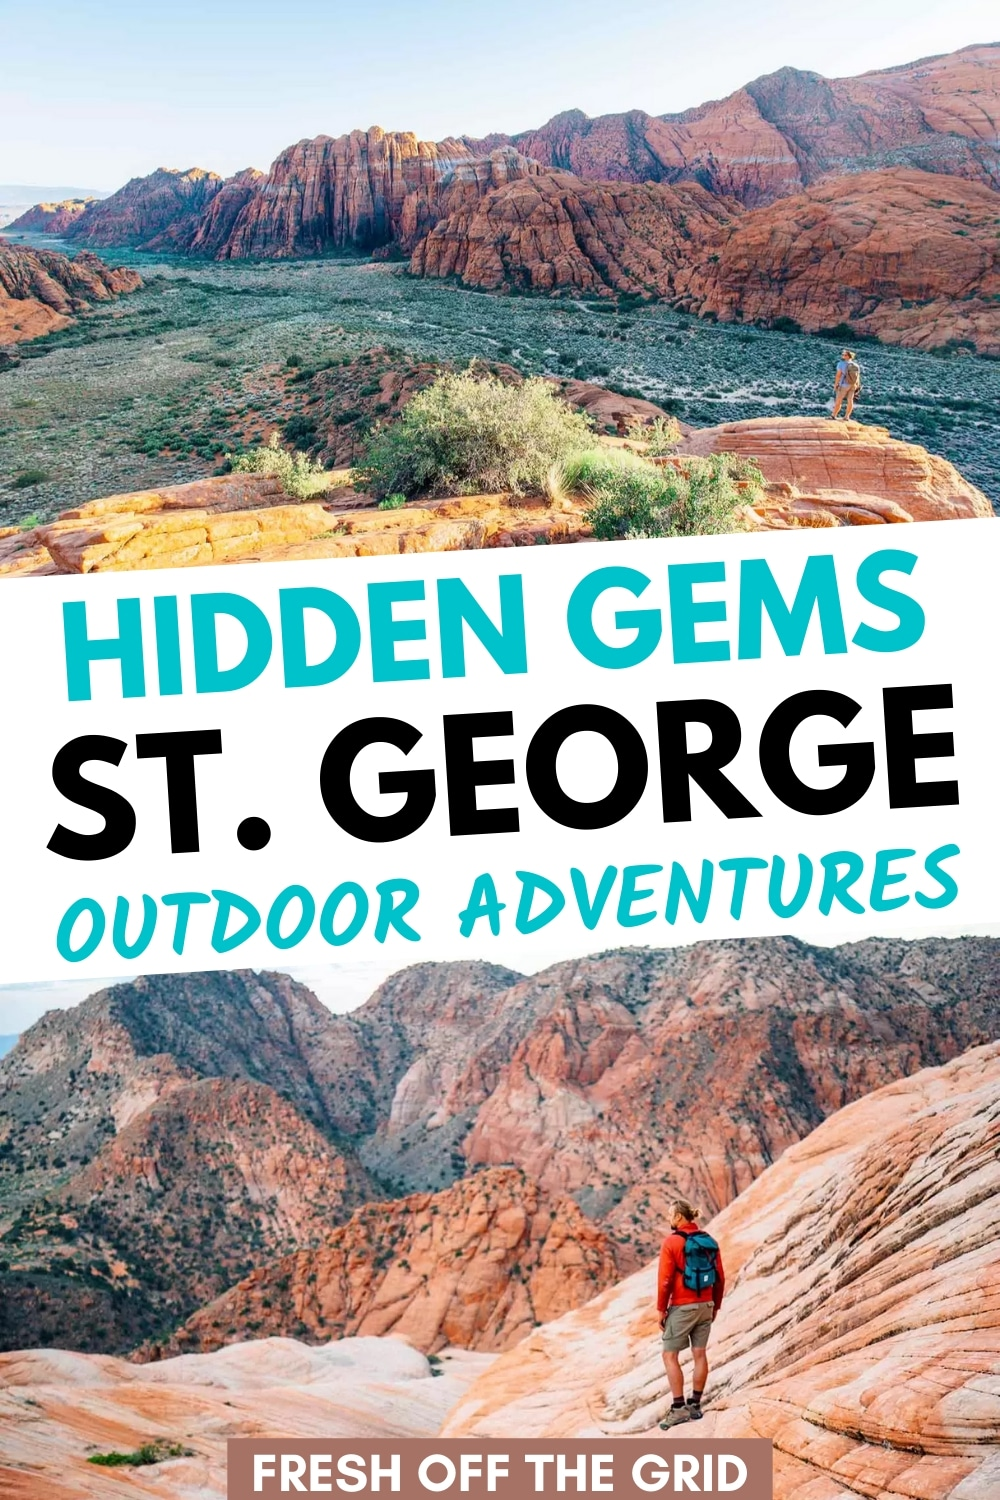 St. George in southern Utah has tons of great outdoor activities for you to explore! This guide will show you some of the best off the beaten path destinations including state parks, lakes, hikes, and more! via @freshoffthegrid